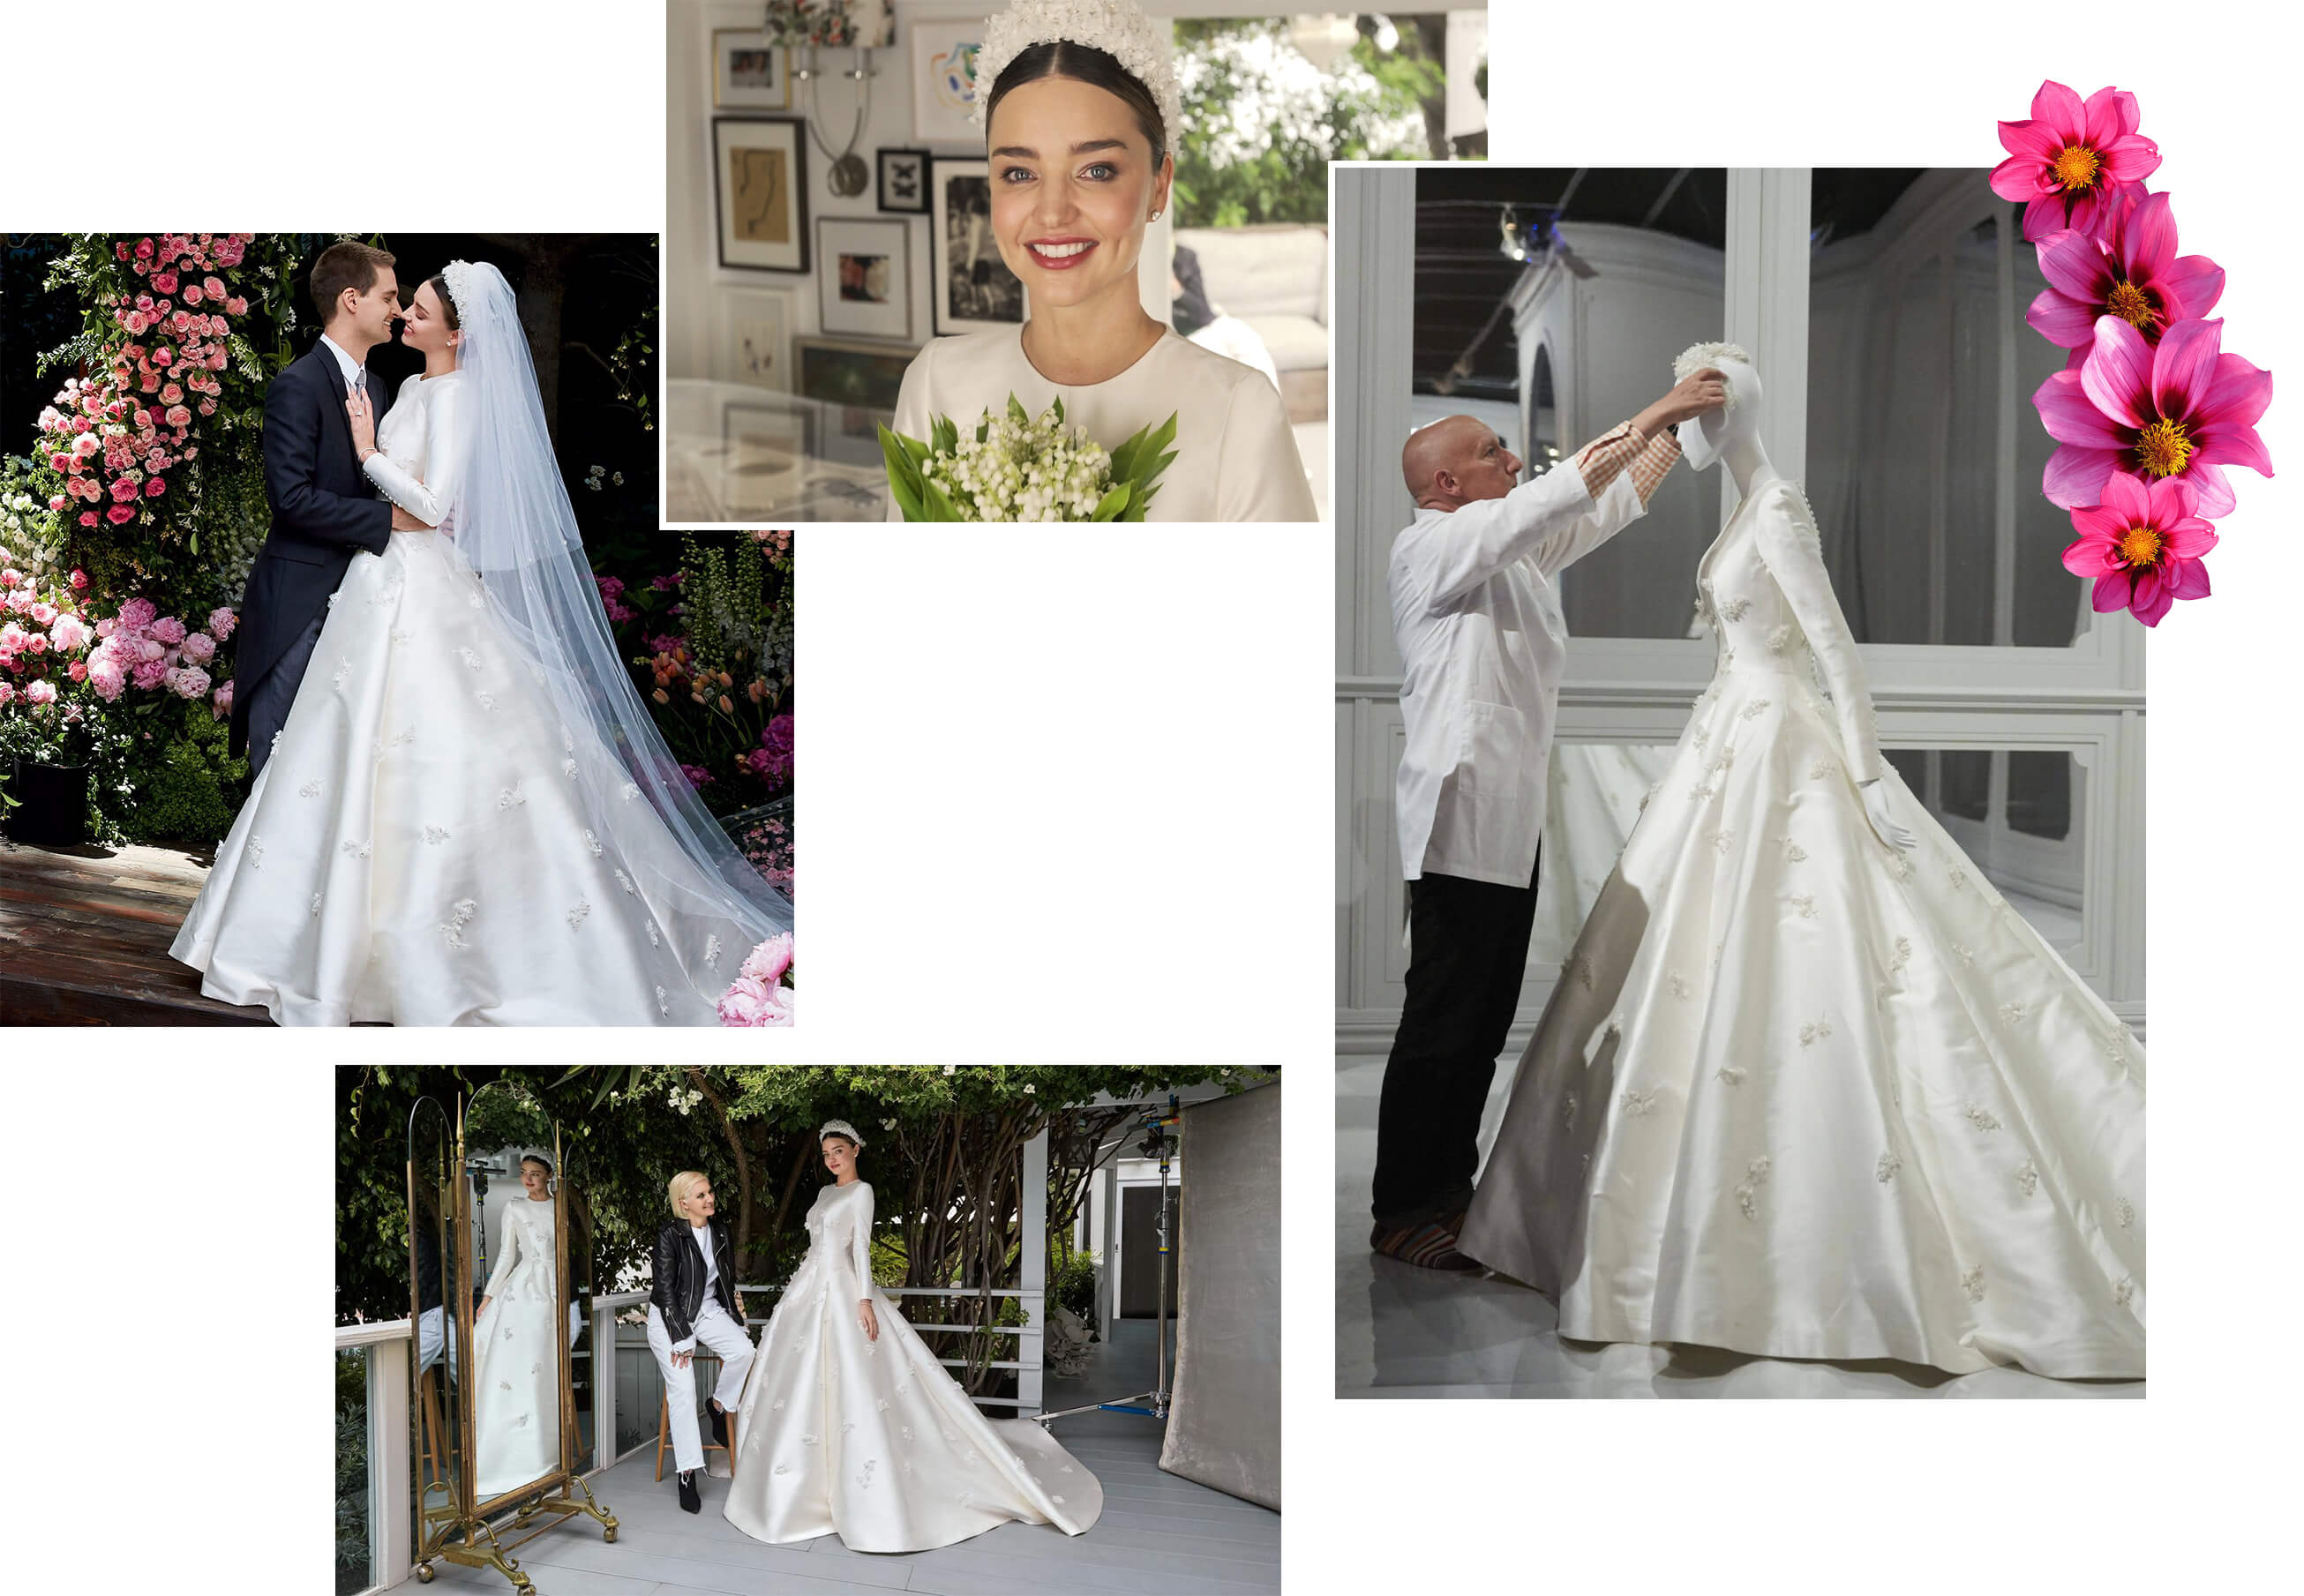 The Italian Reve The Most Astonishing Wedding Dresses Of All The